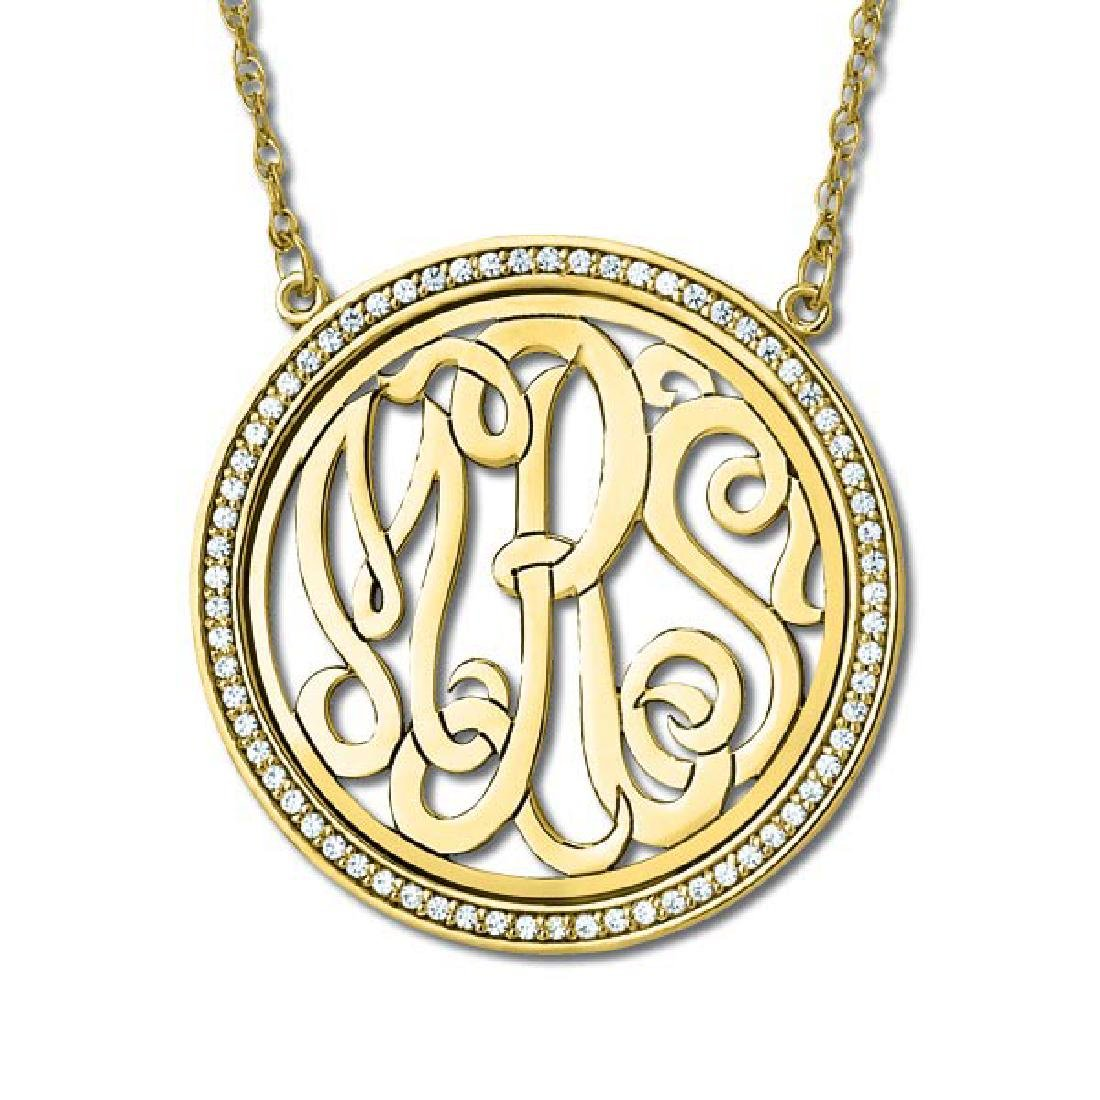 Monogram Initial Necklace with Diamond Accents 14k Yell